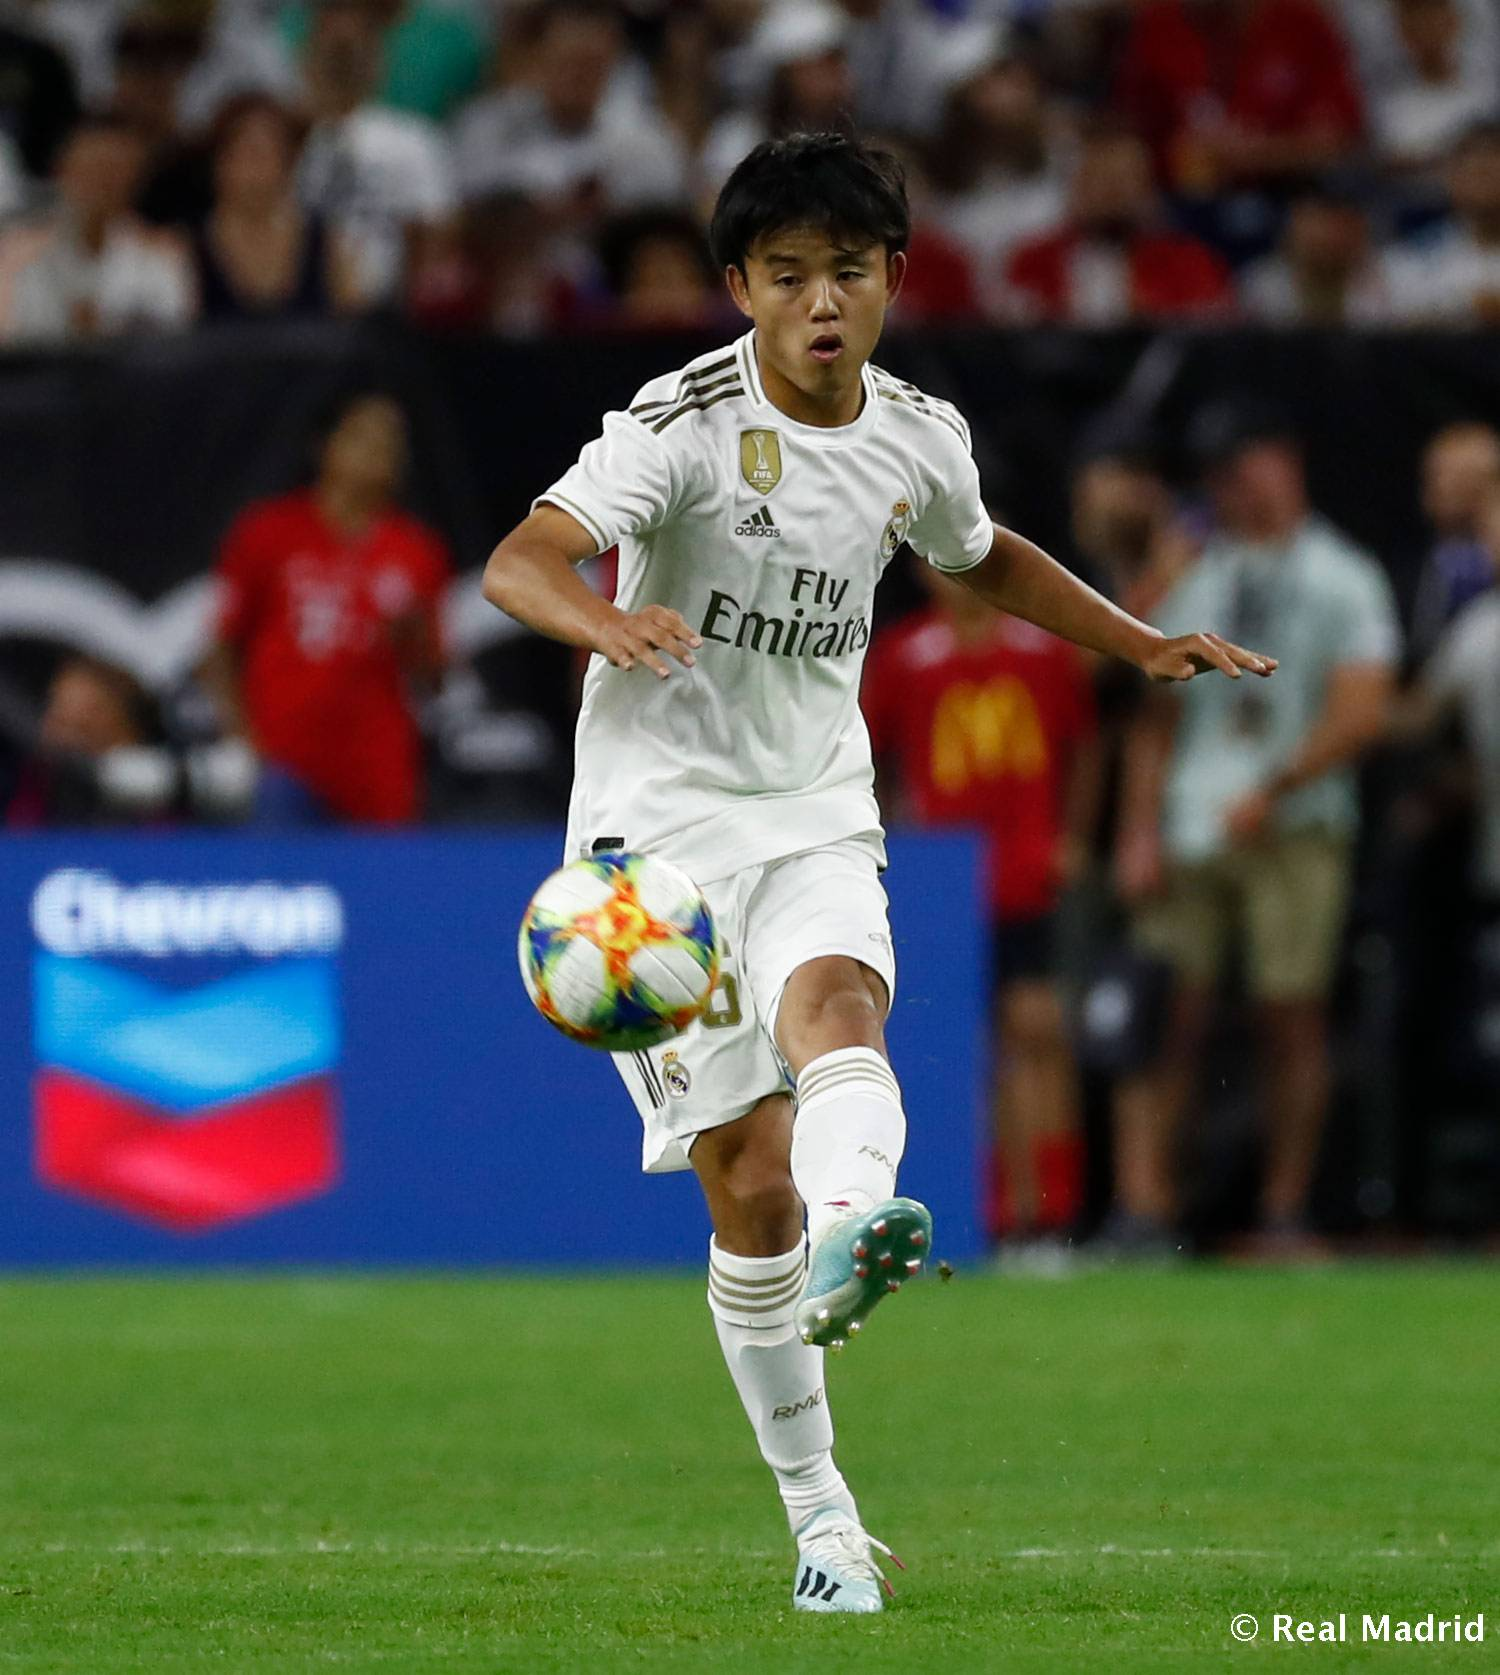 Real Madrid - Debut de Kubo con el Real Madrid - 21-07-2019